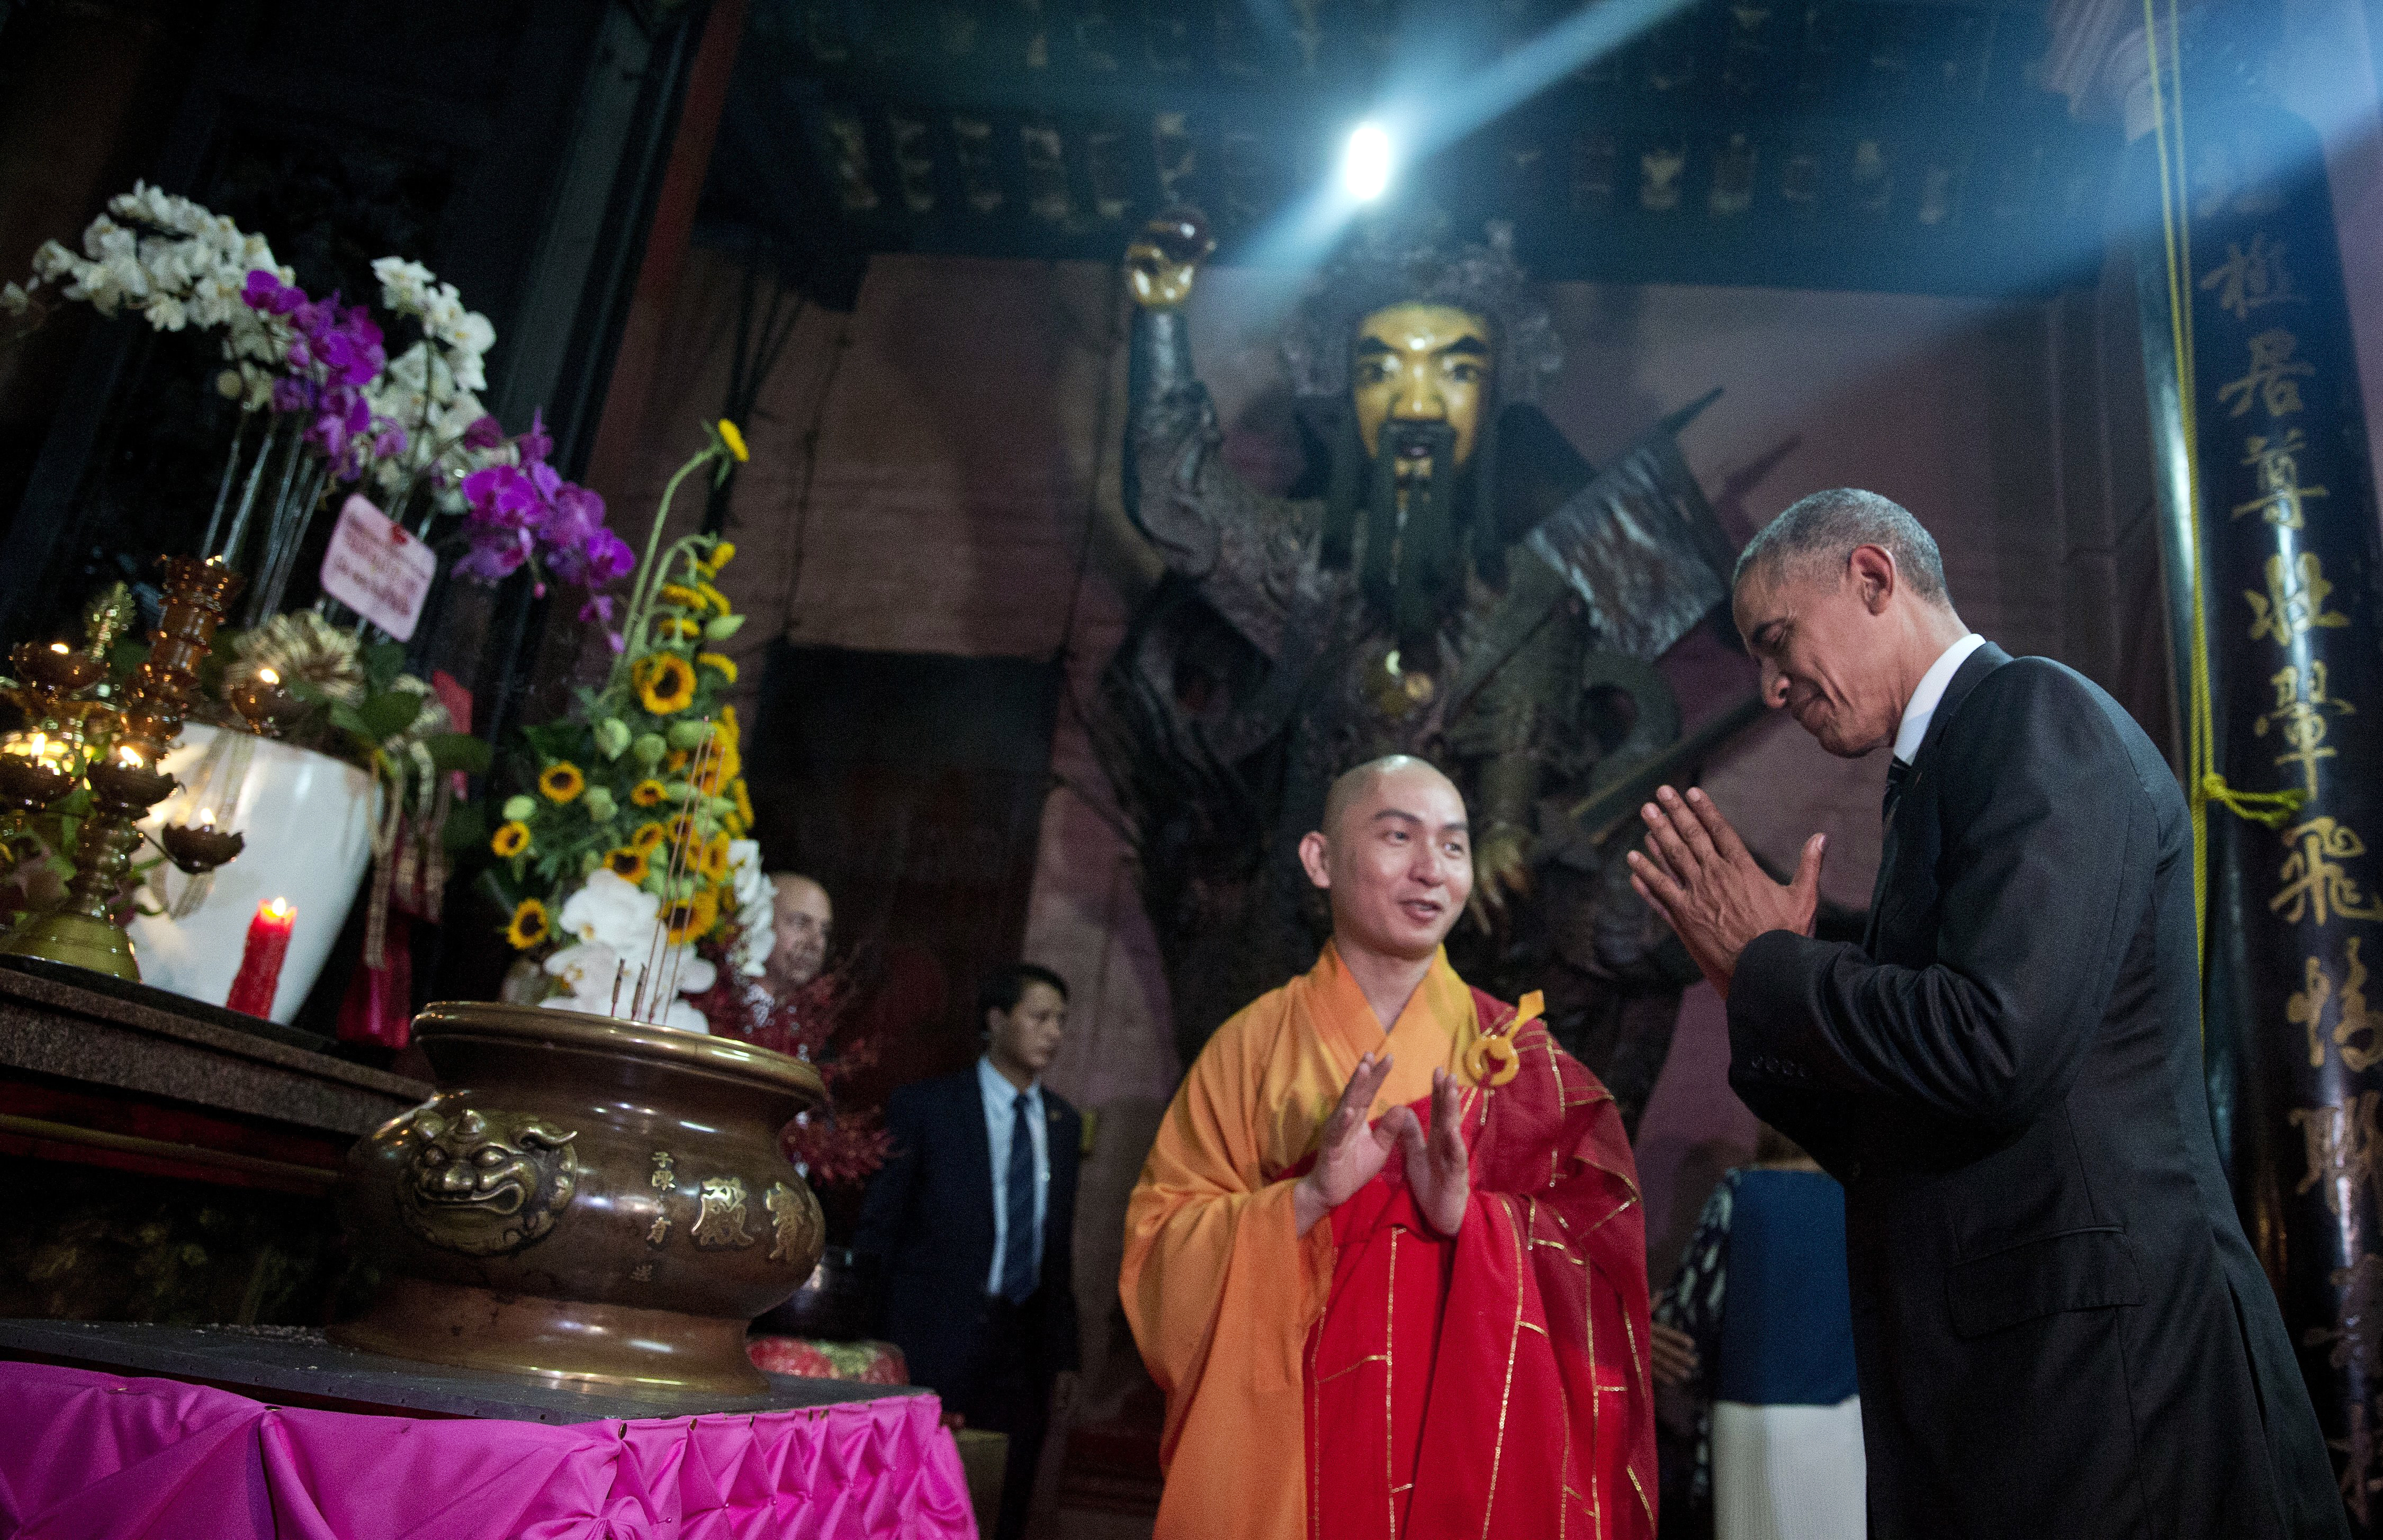 U.S. President Barack Obama bows as he visits the Jade Emperor Pagoda with Thich Minh Thong, abbot of the Jade Emperor Pagoda, in Ho Chi Minh City, Vietnam, Tuesday, May 24, 2016.